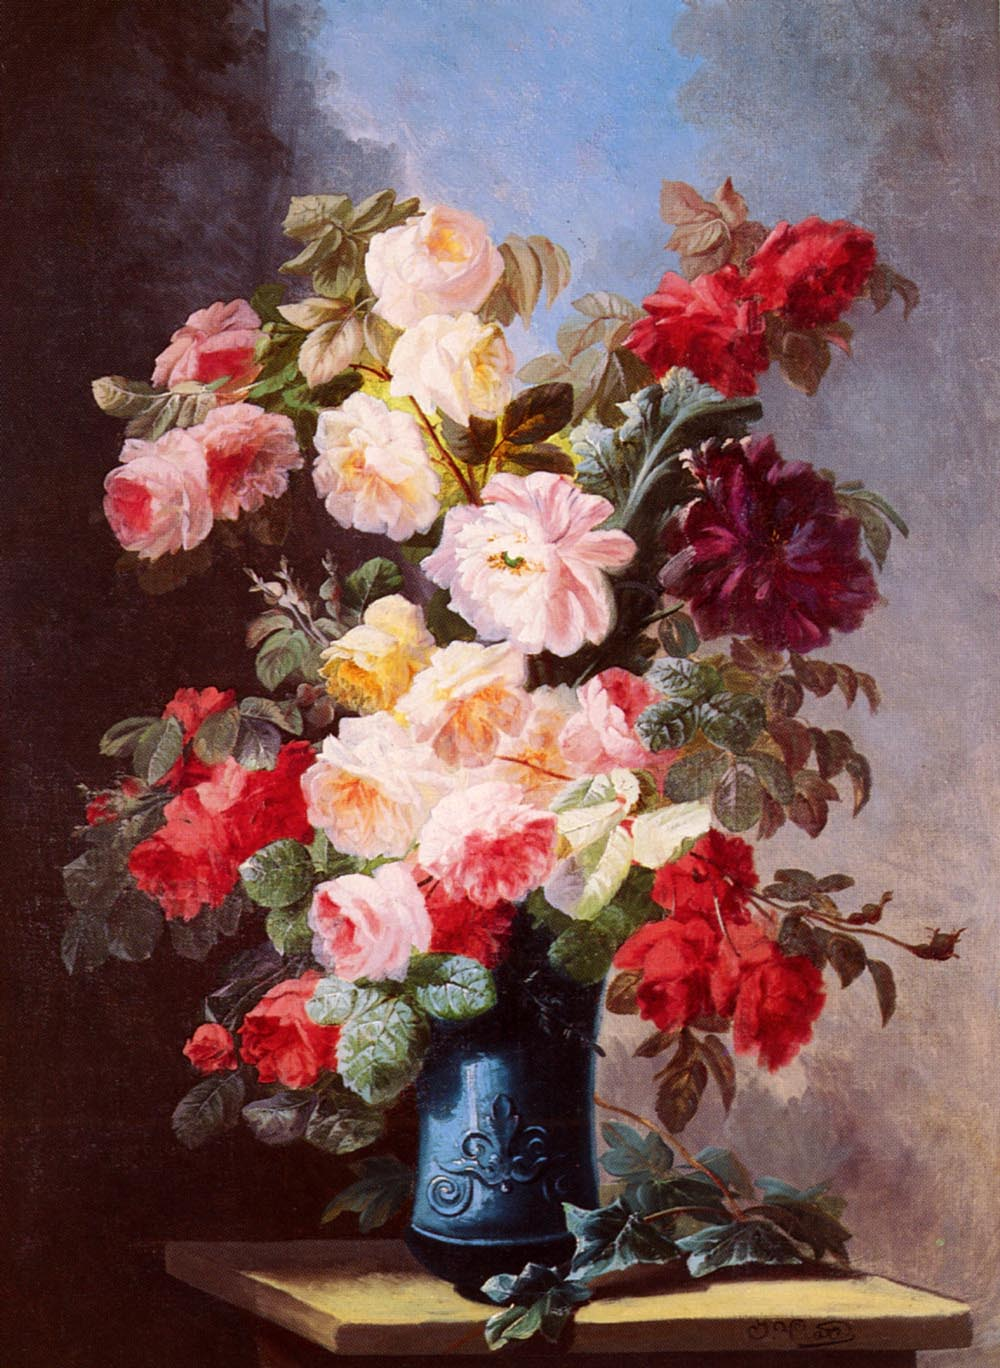 A Still Life With Roses And Peonies In A Blue Vase by Georges Viard